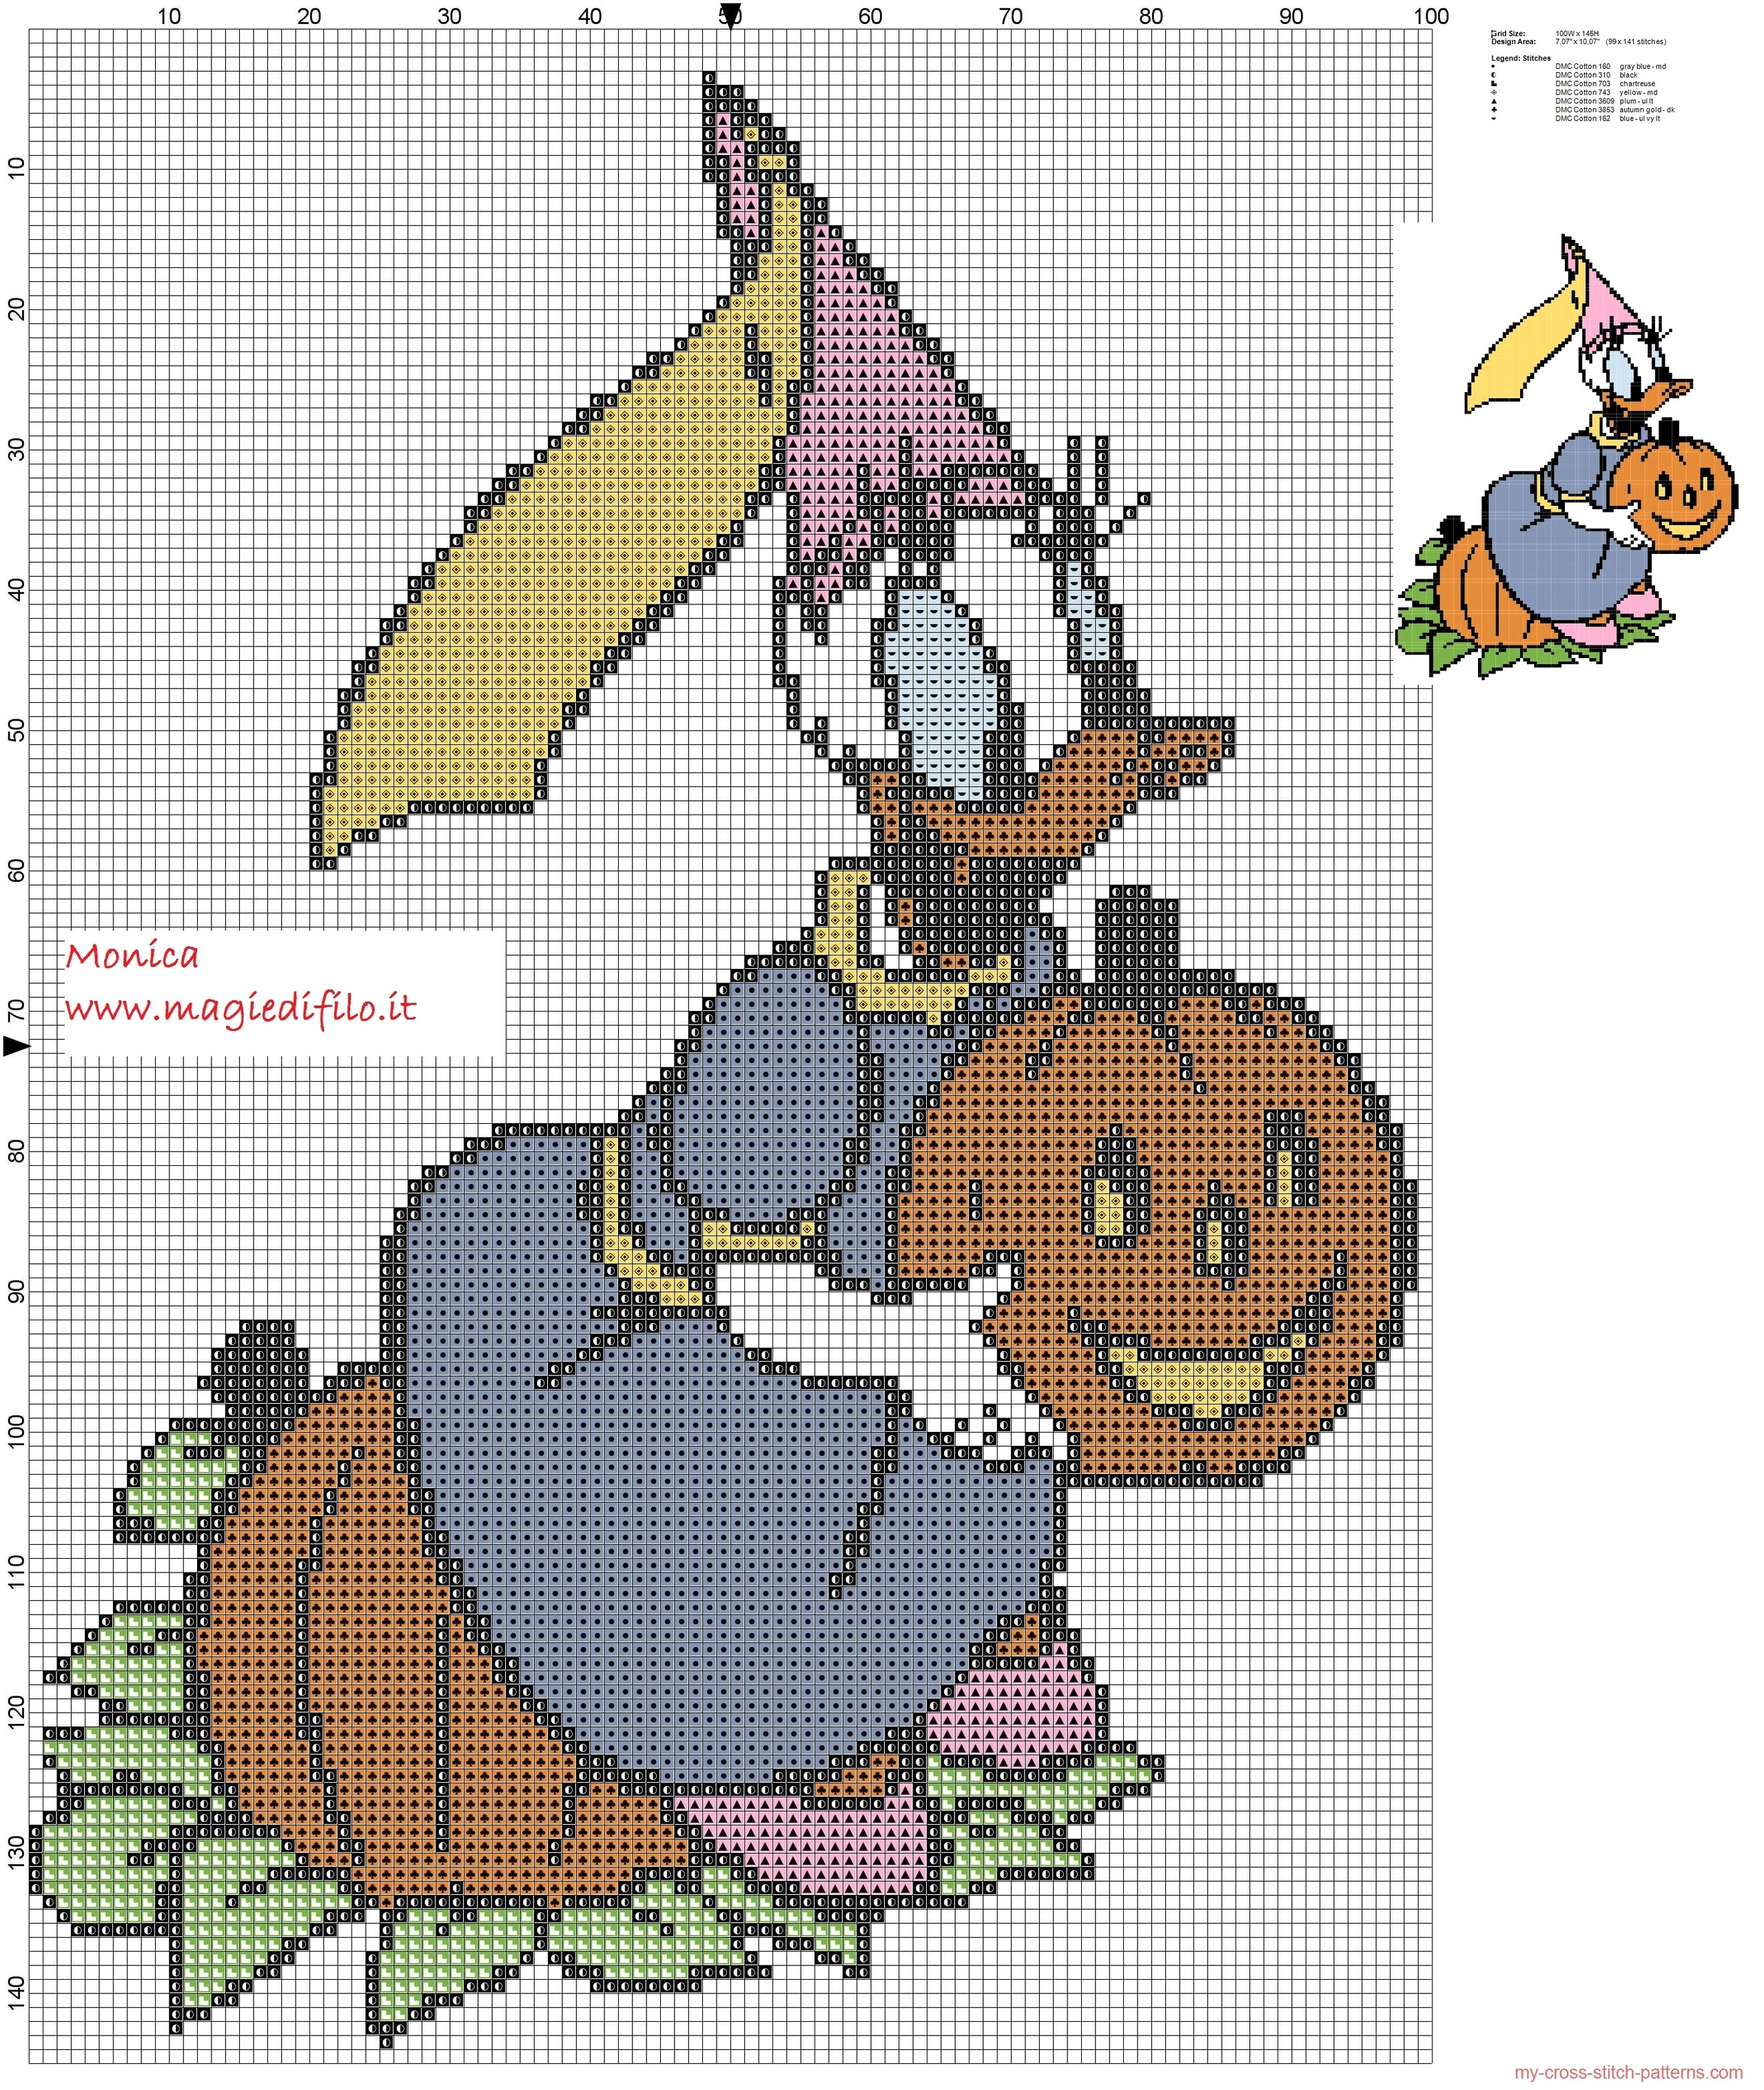 daisy_with_pumpkin_cross_stitch_pattern_